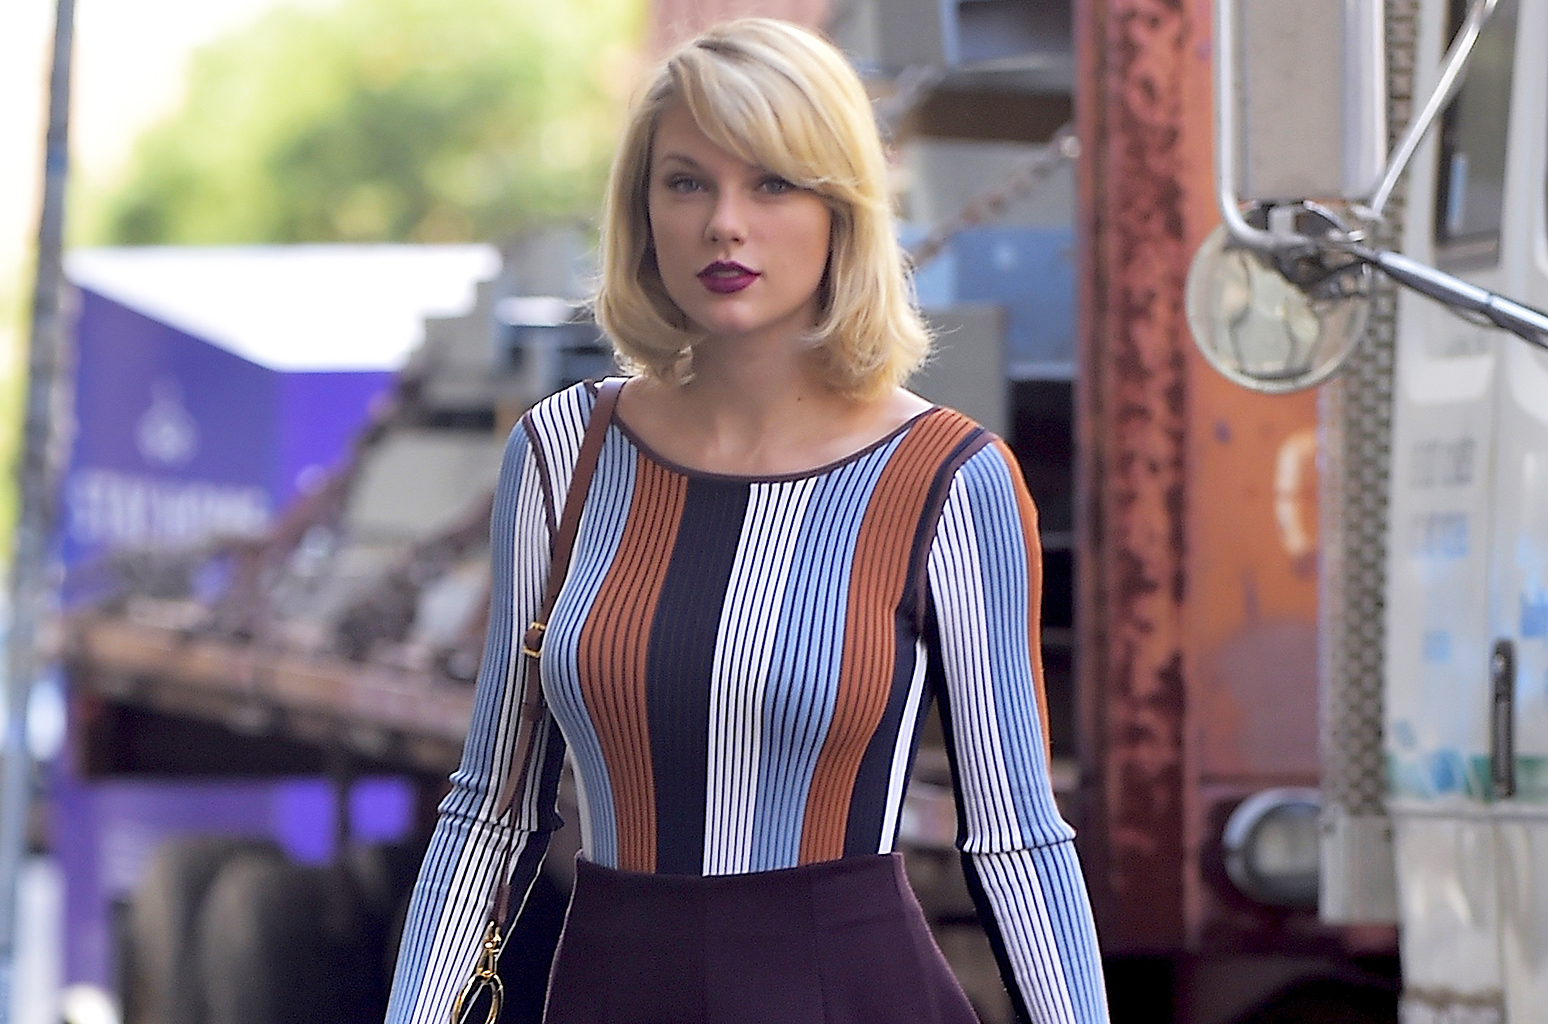 #TaylorSwift: Trial Is About Sexual Assault, Not Fame [VIDEO]